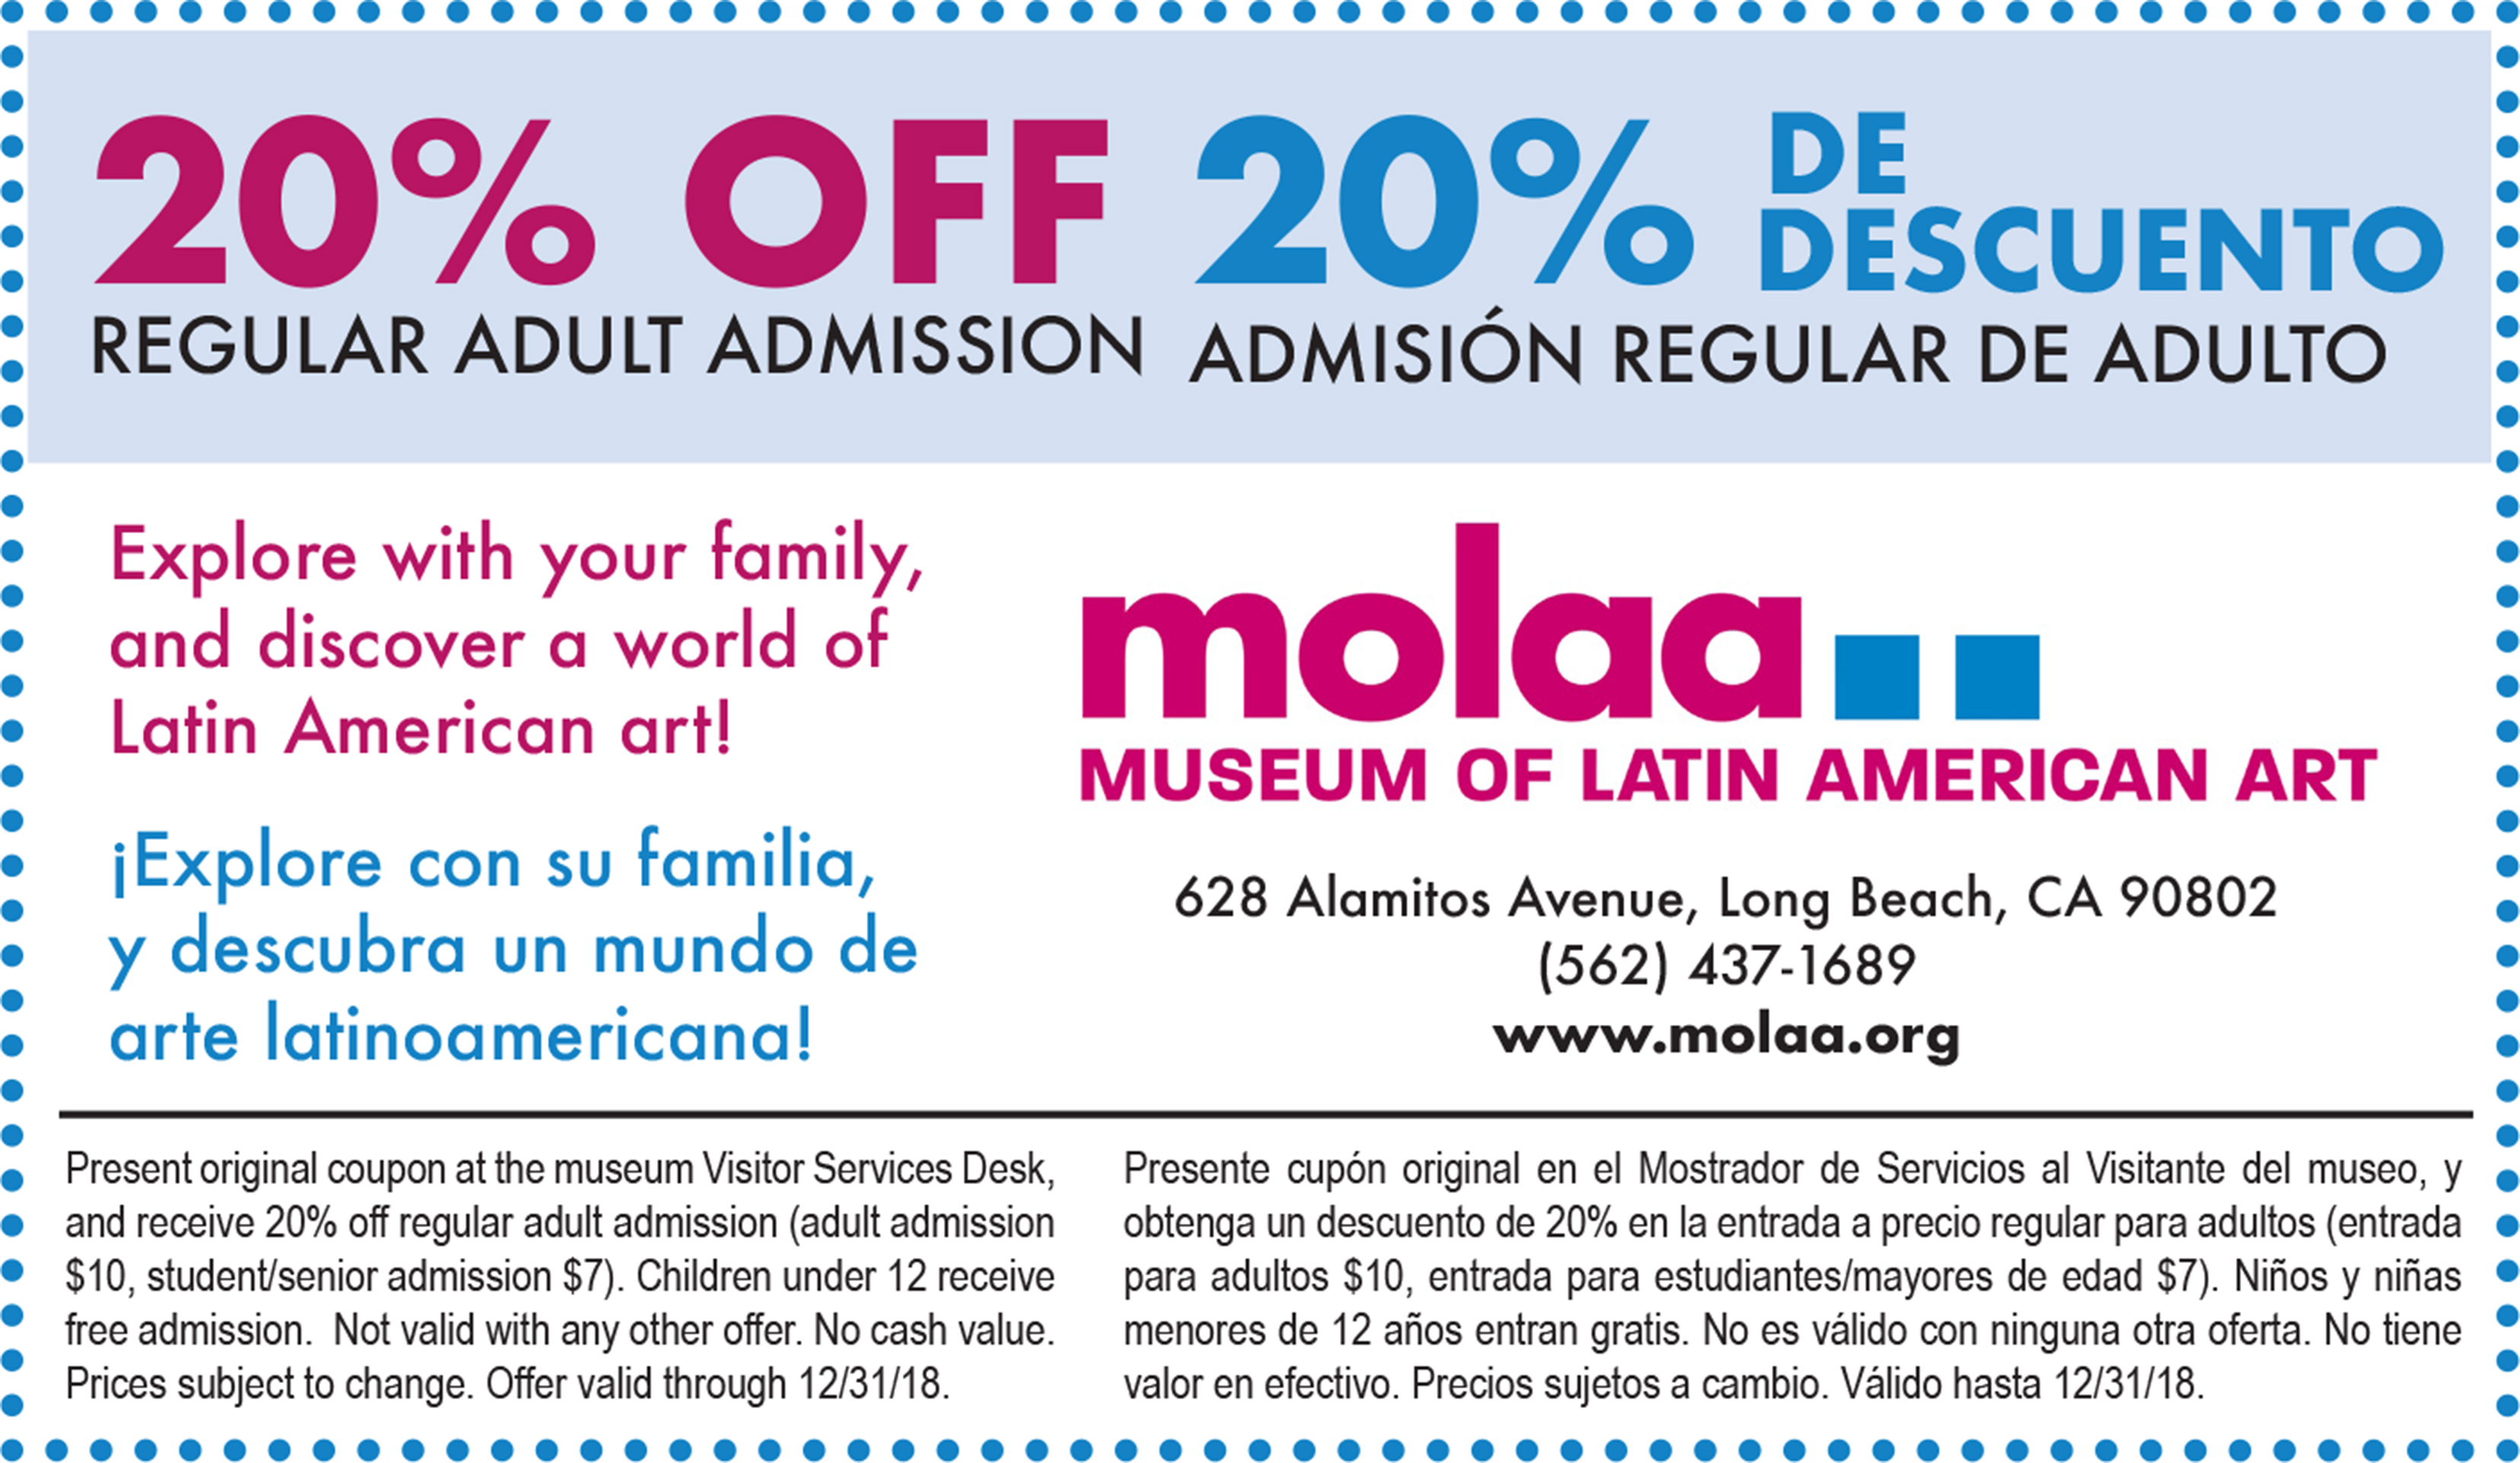 Natural History Museum Coupon Code Los Angeles